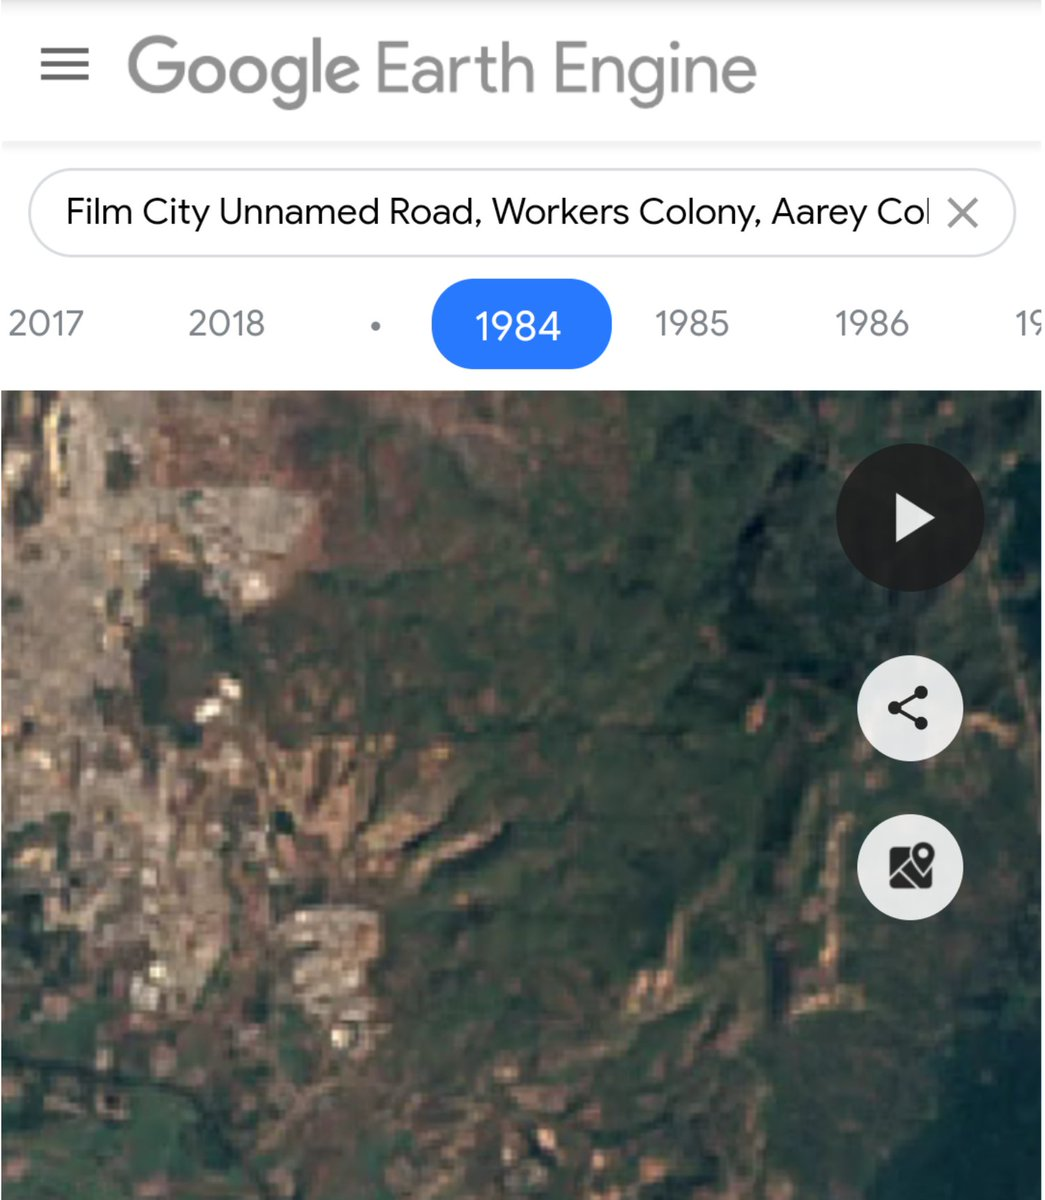 Google earth images of Film City, Aarey colony (1984 vs 2018). Forest spread over 520 acres was razed for it. Aarey metro shed area is only 79 acres, half of it is treeless.  Make ur own opinion on social issues. Never let an opportunist bollywoodiya influence u on anything.